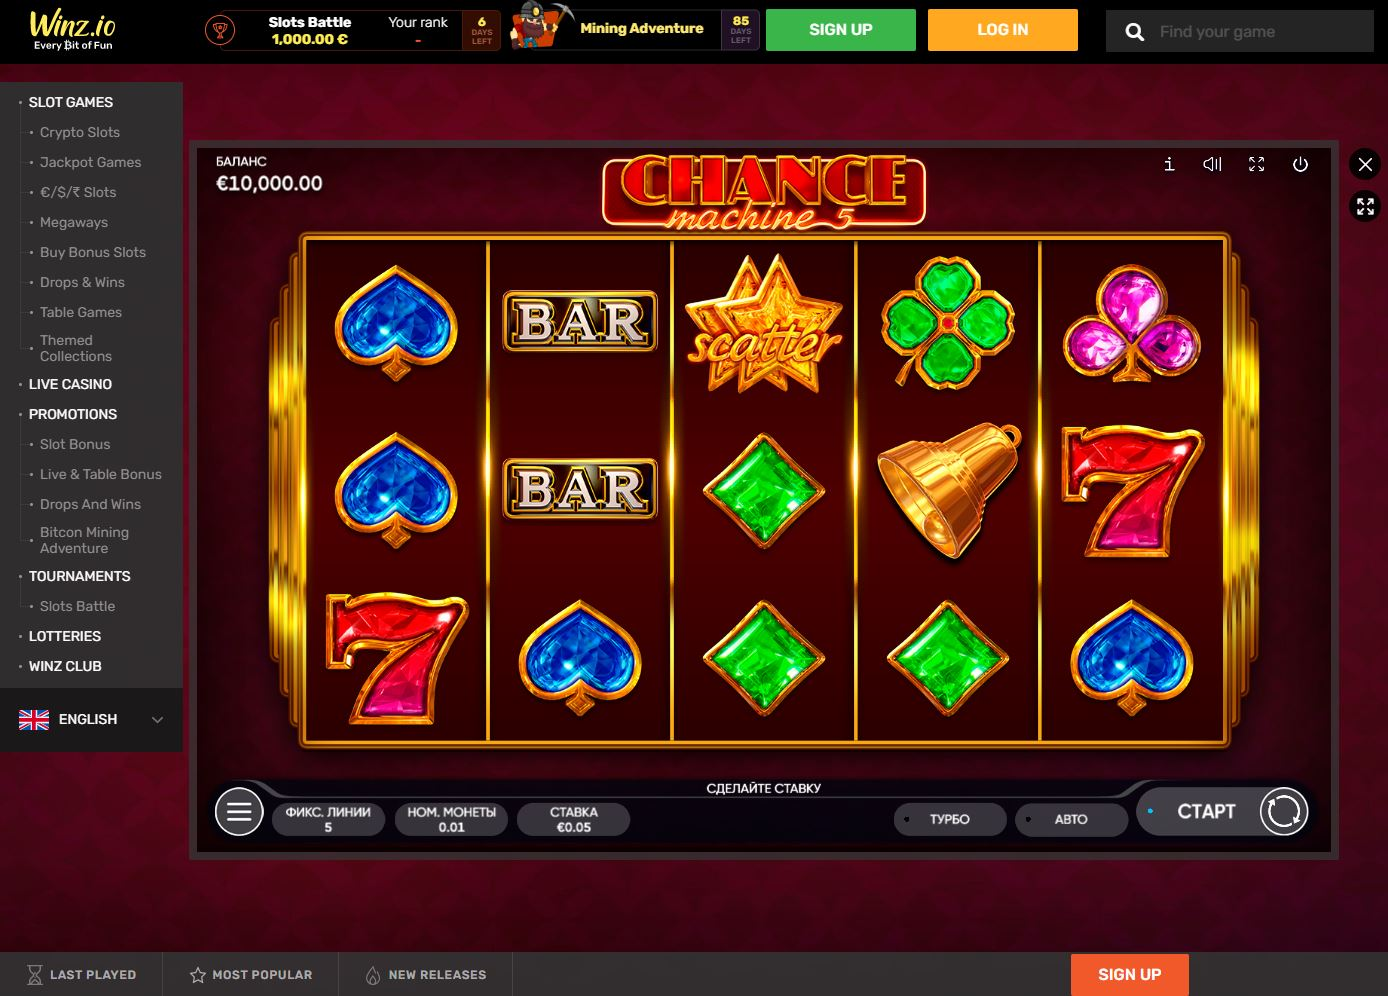 Game Page in Winz Casino